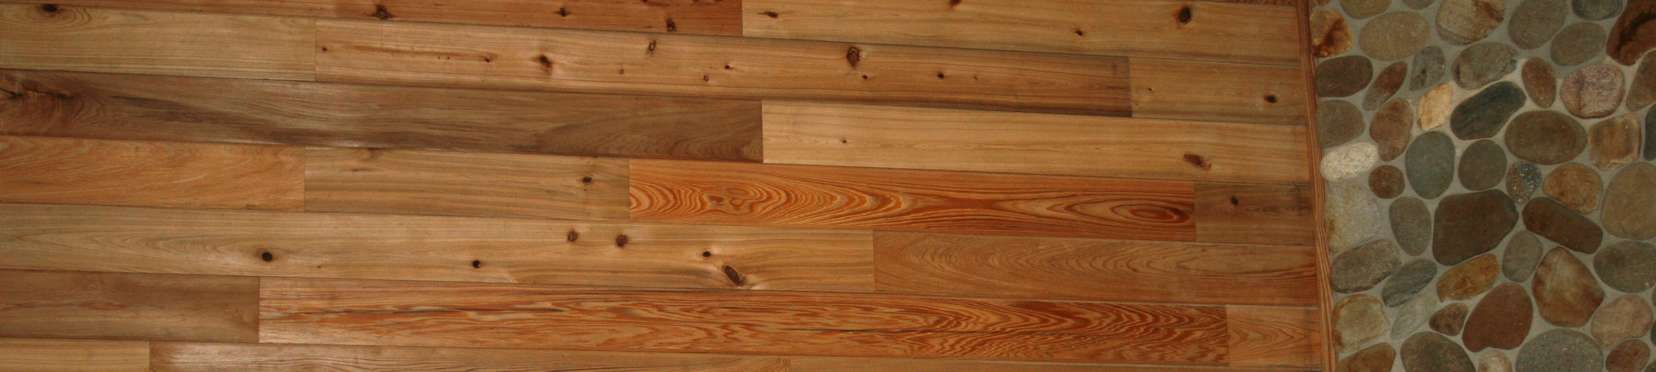 Photo Journal From The National Wood Flooring Association